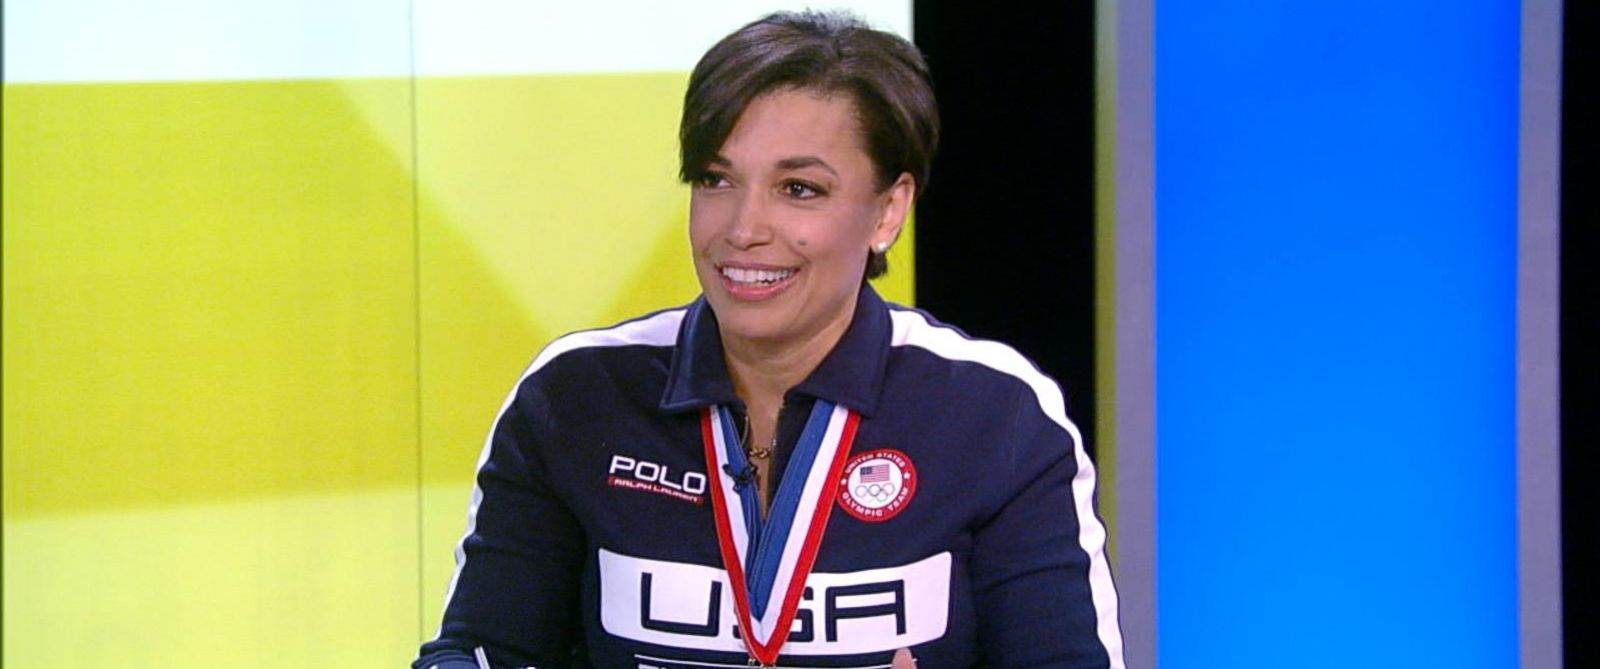 VIDEO: Learning resilience from Olympic athletes